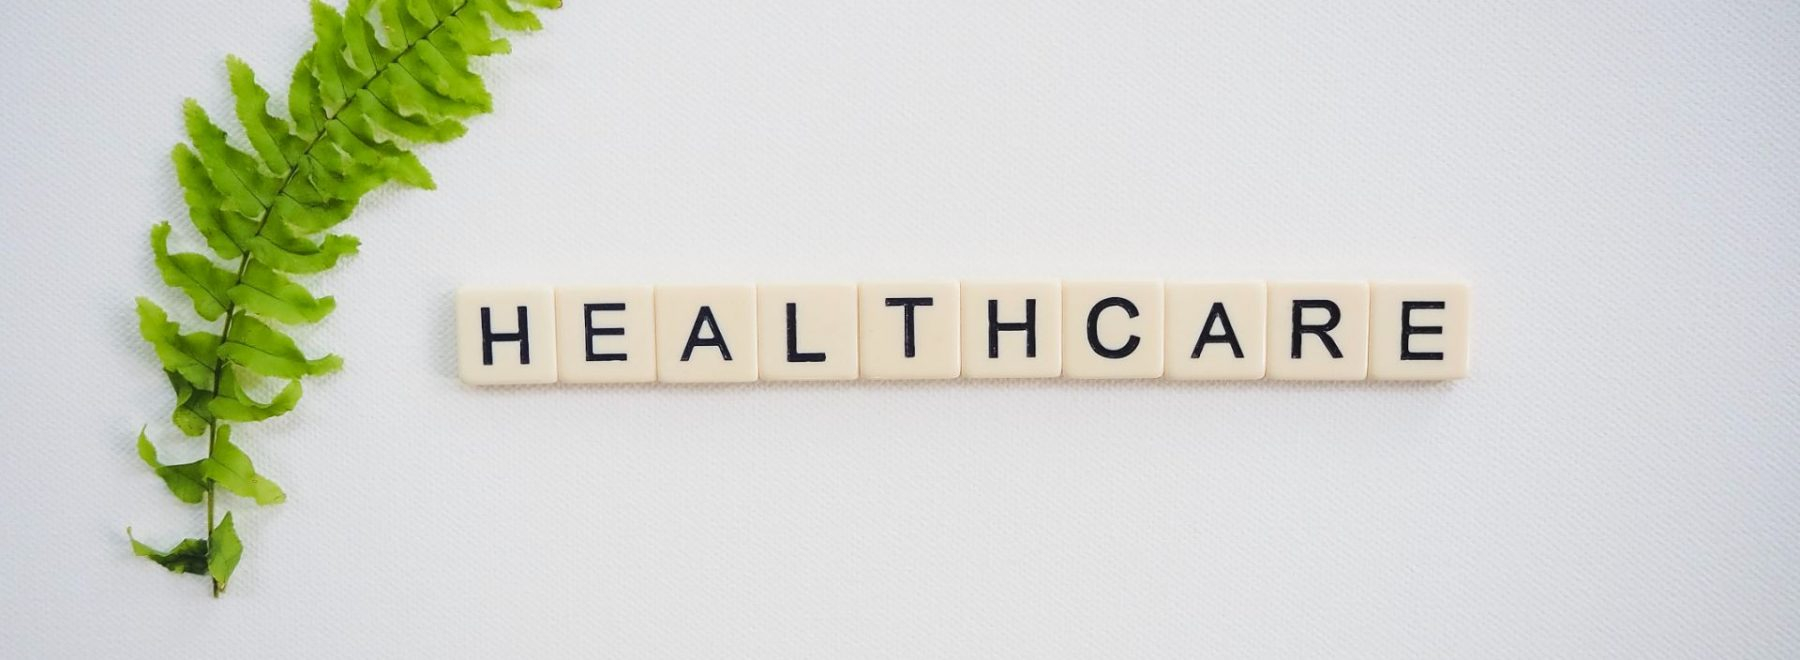 'HEALTHCARE' spelt out in scrabble letters